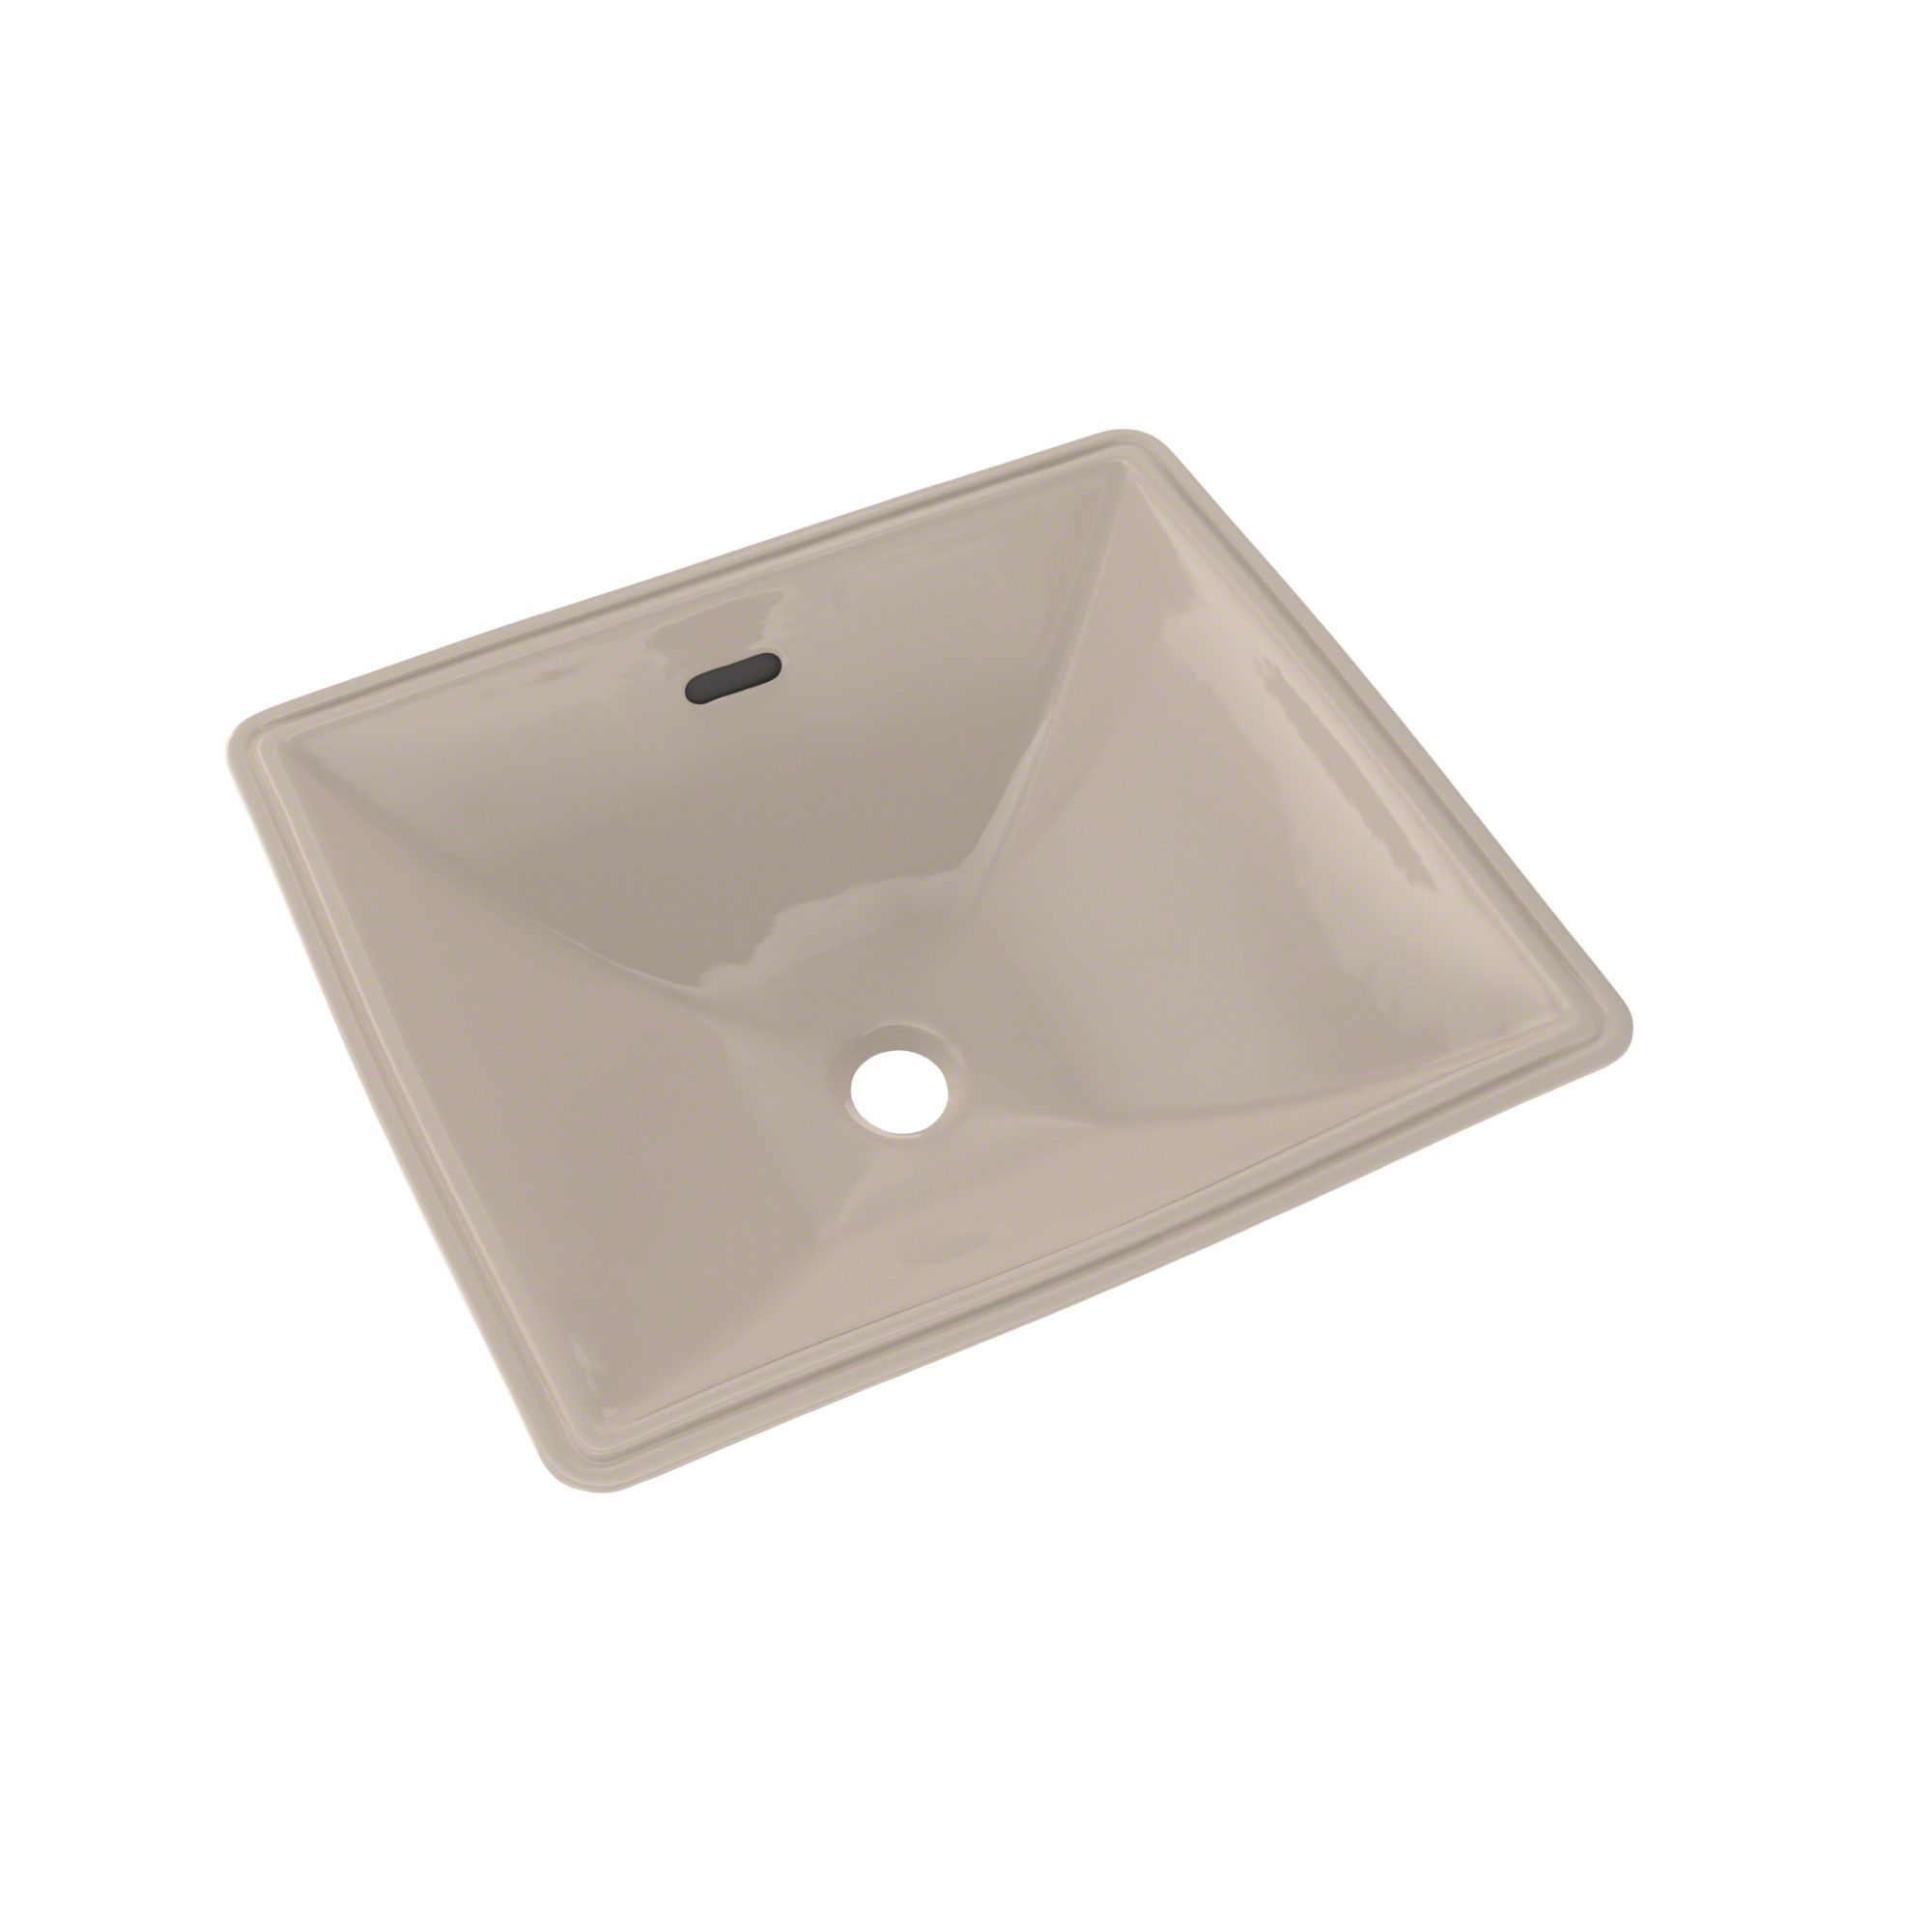 Toto Legato Rectangular Undermount Bathroom Sink With Cefiontect Bone Lt624g 03 Bathroom Sink Decor In 2019 Undermount Bathroom Sink Bathroom Craftsman Bathroom